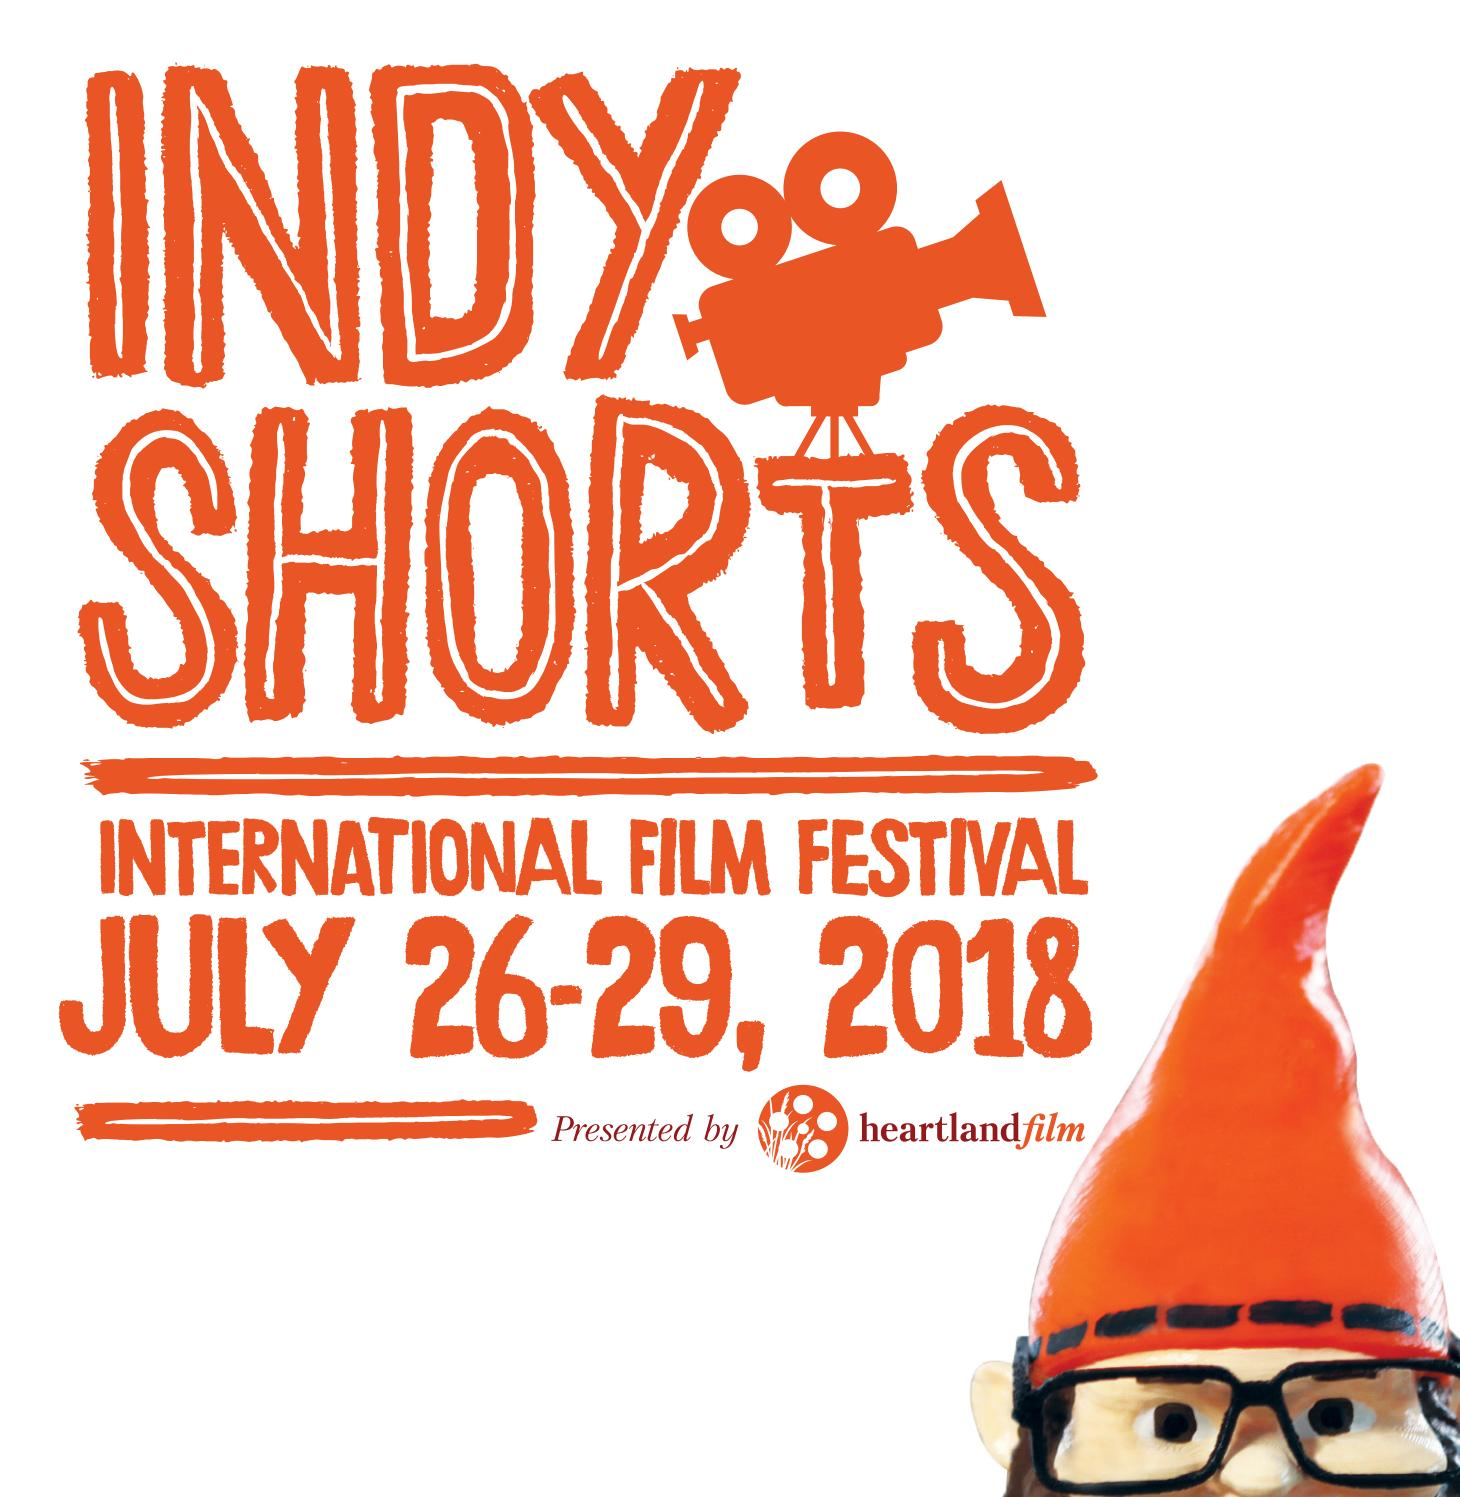 Indy Shorts International Film Festival Guidebook 2018 By